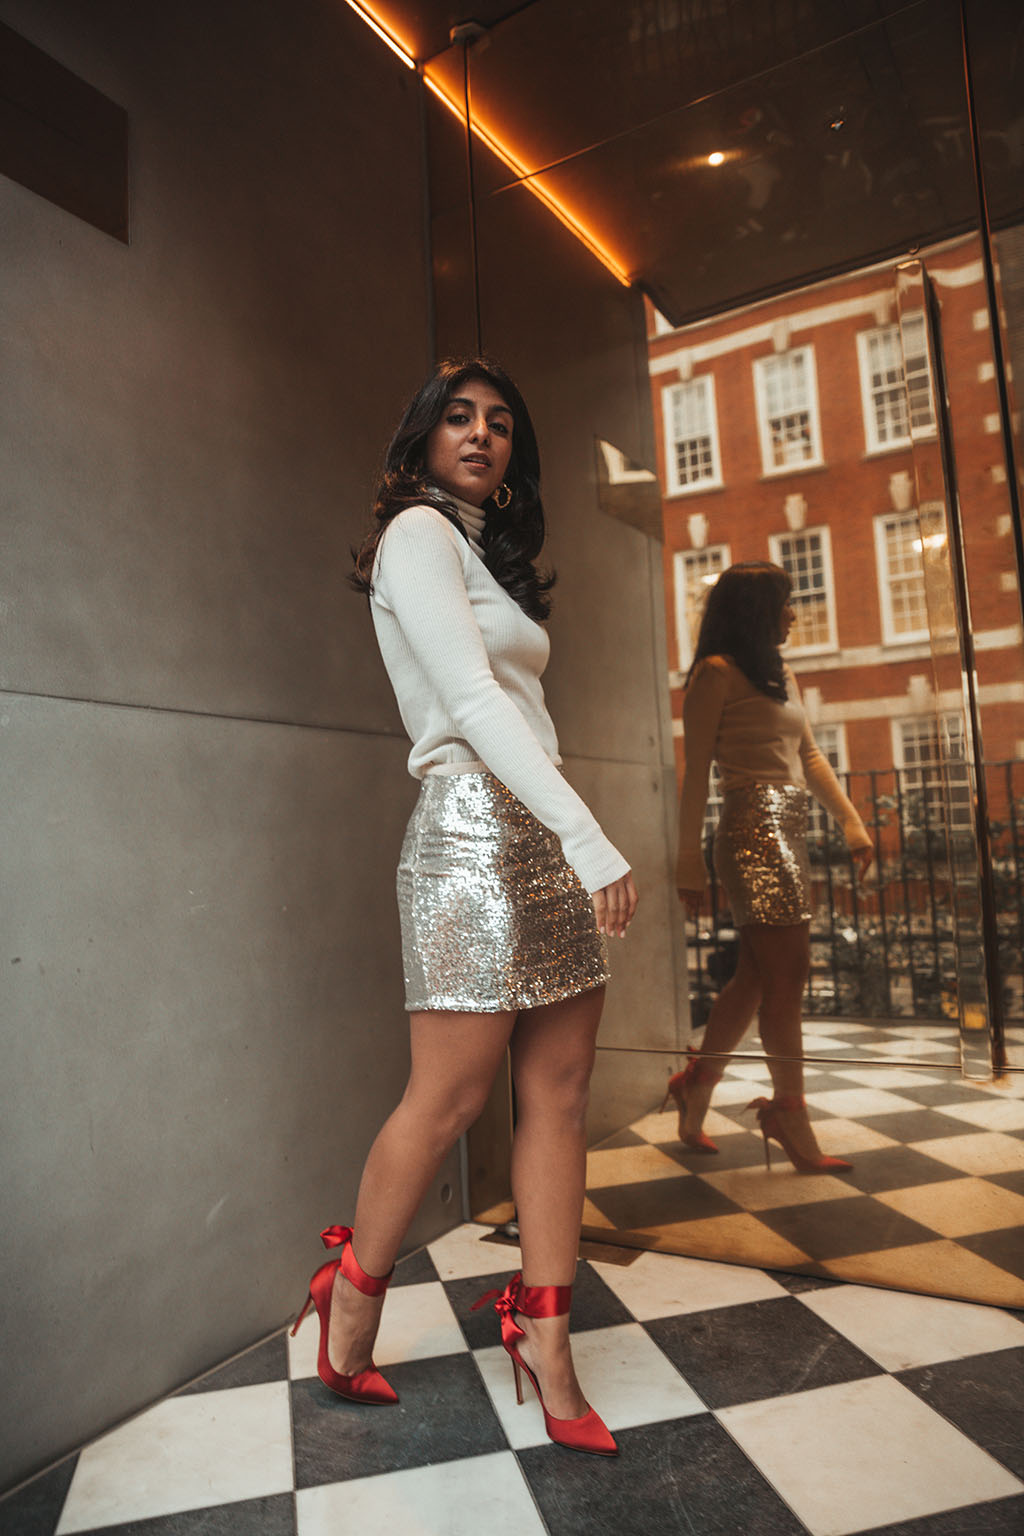 d644d8ac628d Luxury fashion blogger Shloka Narang of The Silk Sneaker shares a holiday  party outfit idea featuring